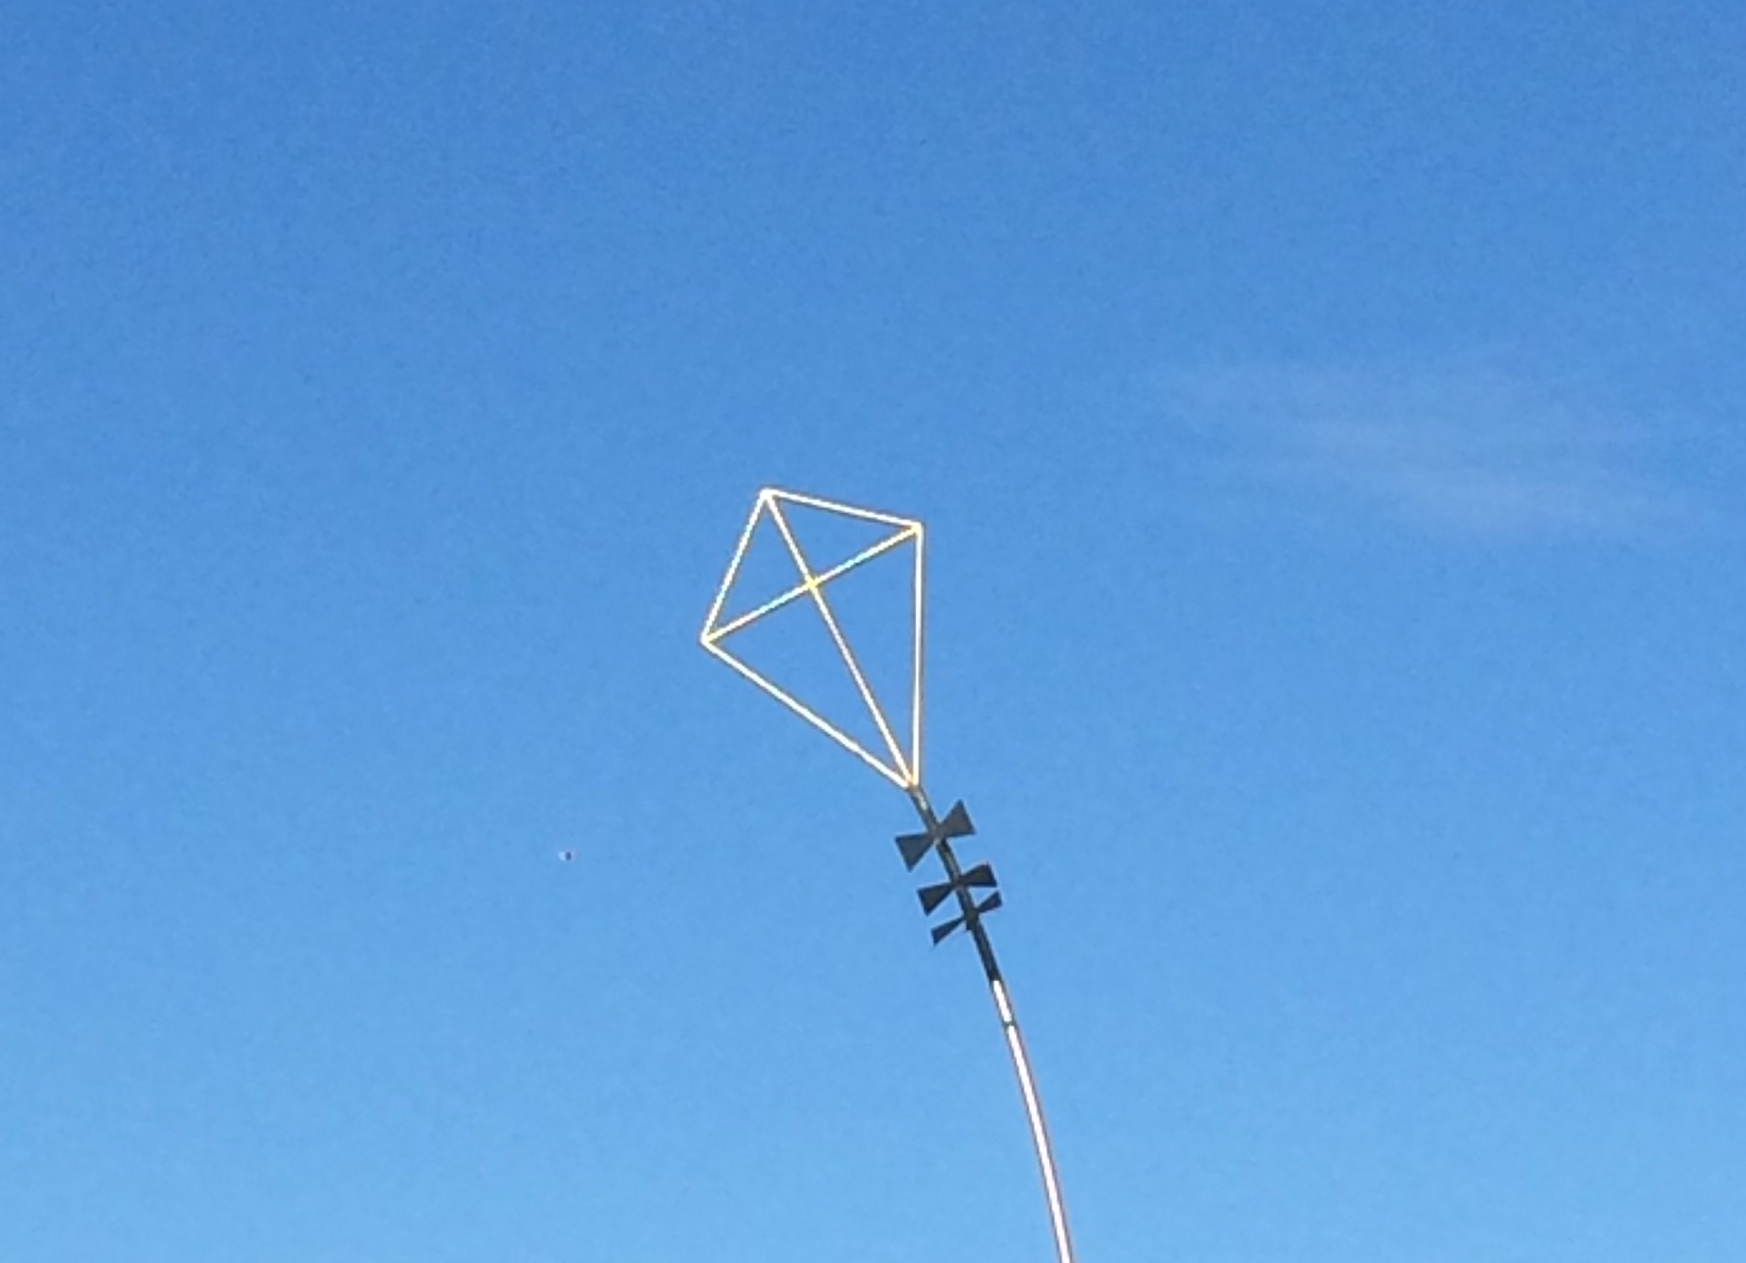 Are you looking to fly your kite in a new direction?